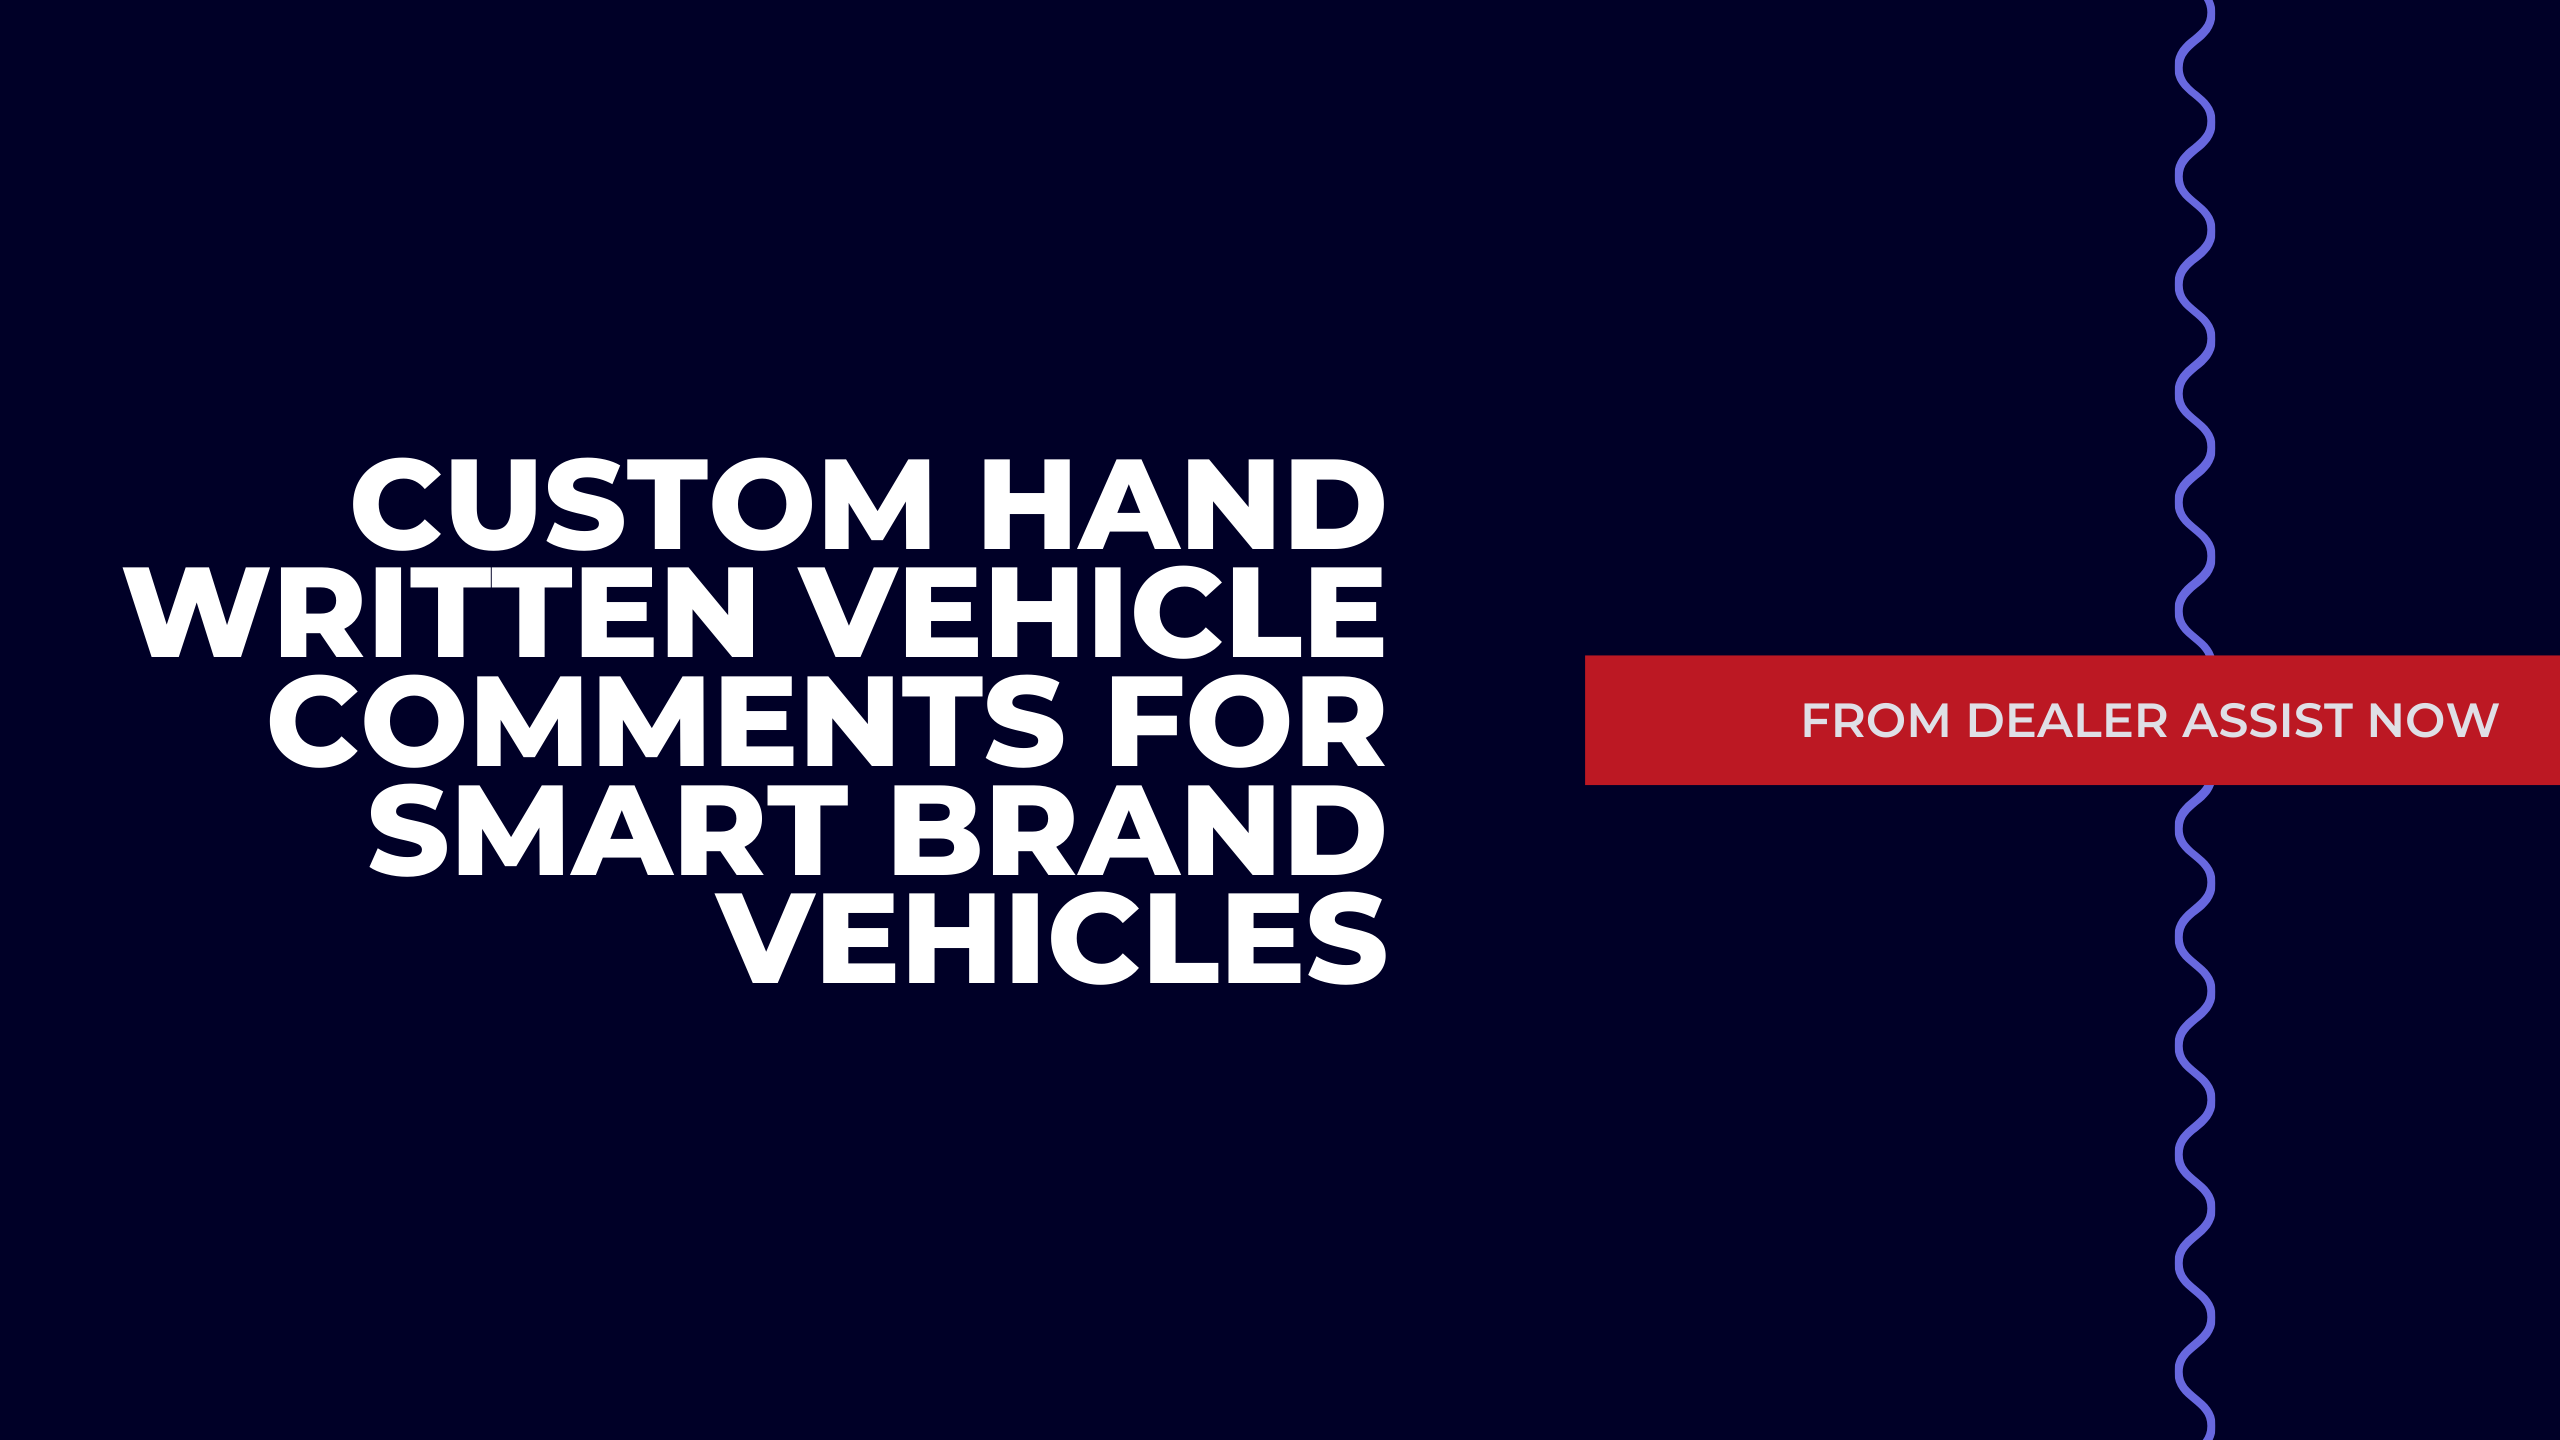 Custom Hand Written Vehicle Comments for Smart Brand Vehicles